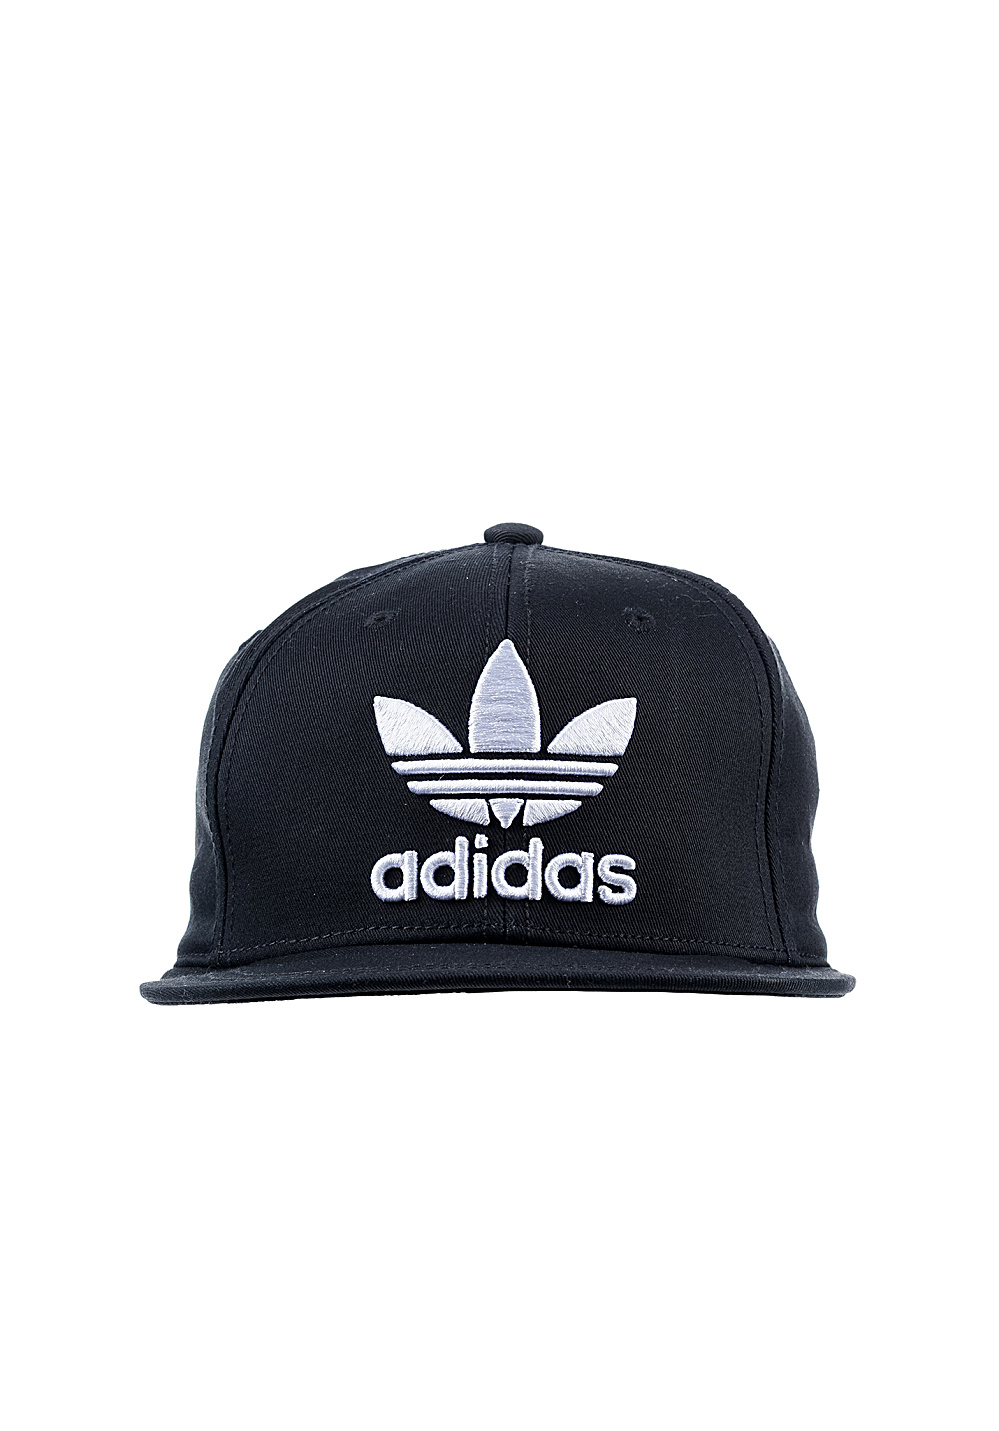 Next. This product is currently out of stock. ADIDAS ORIGINALS. AC Tre Flat  - Snapback Cap. €22.95 dc79c696111d